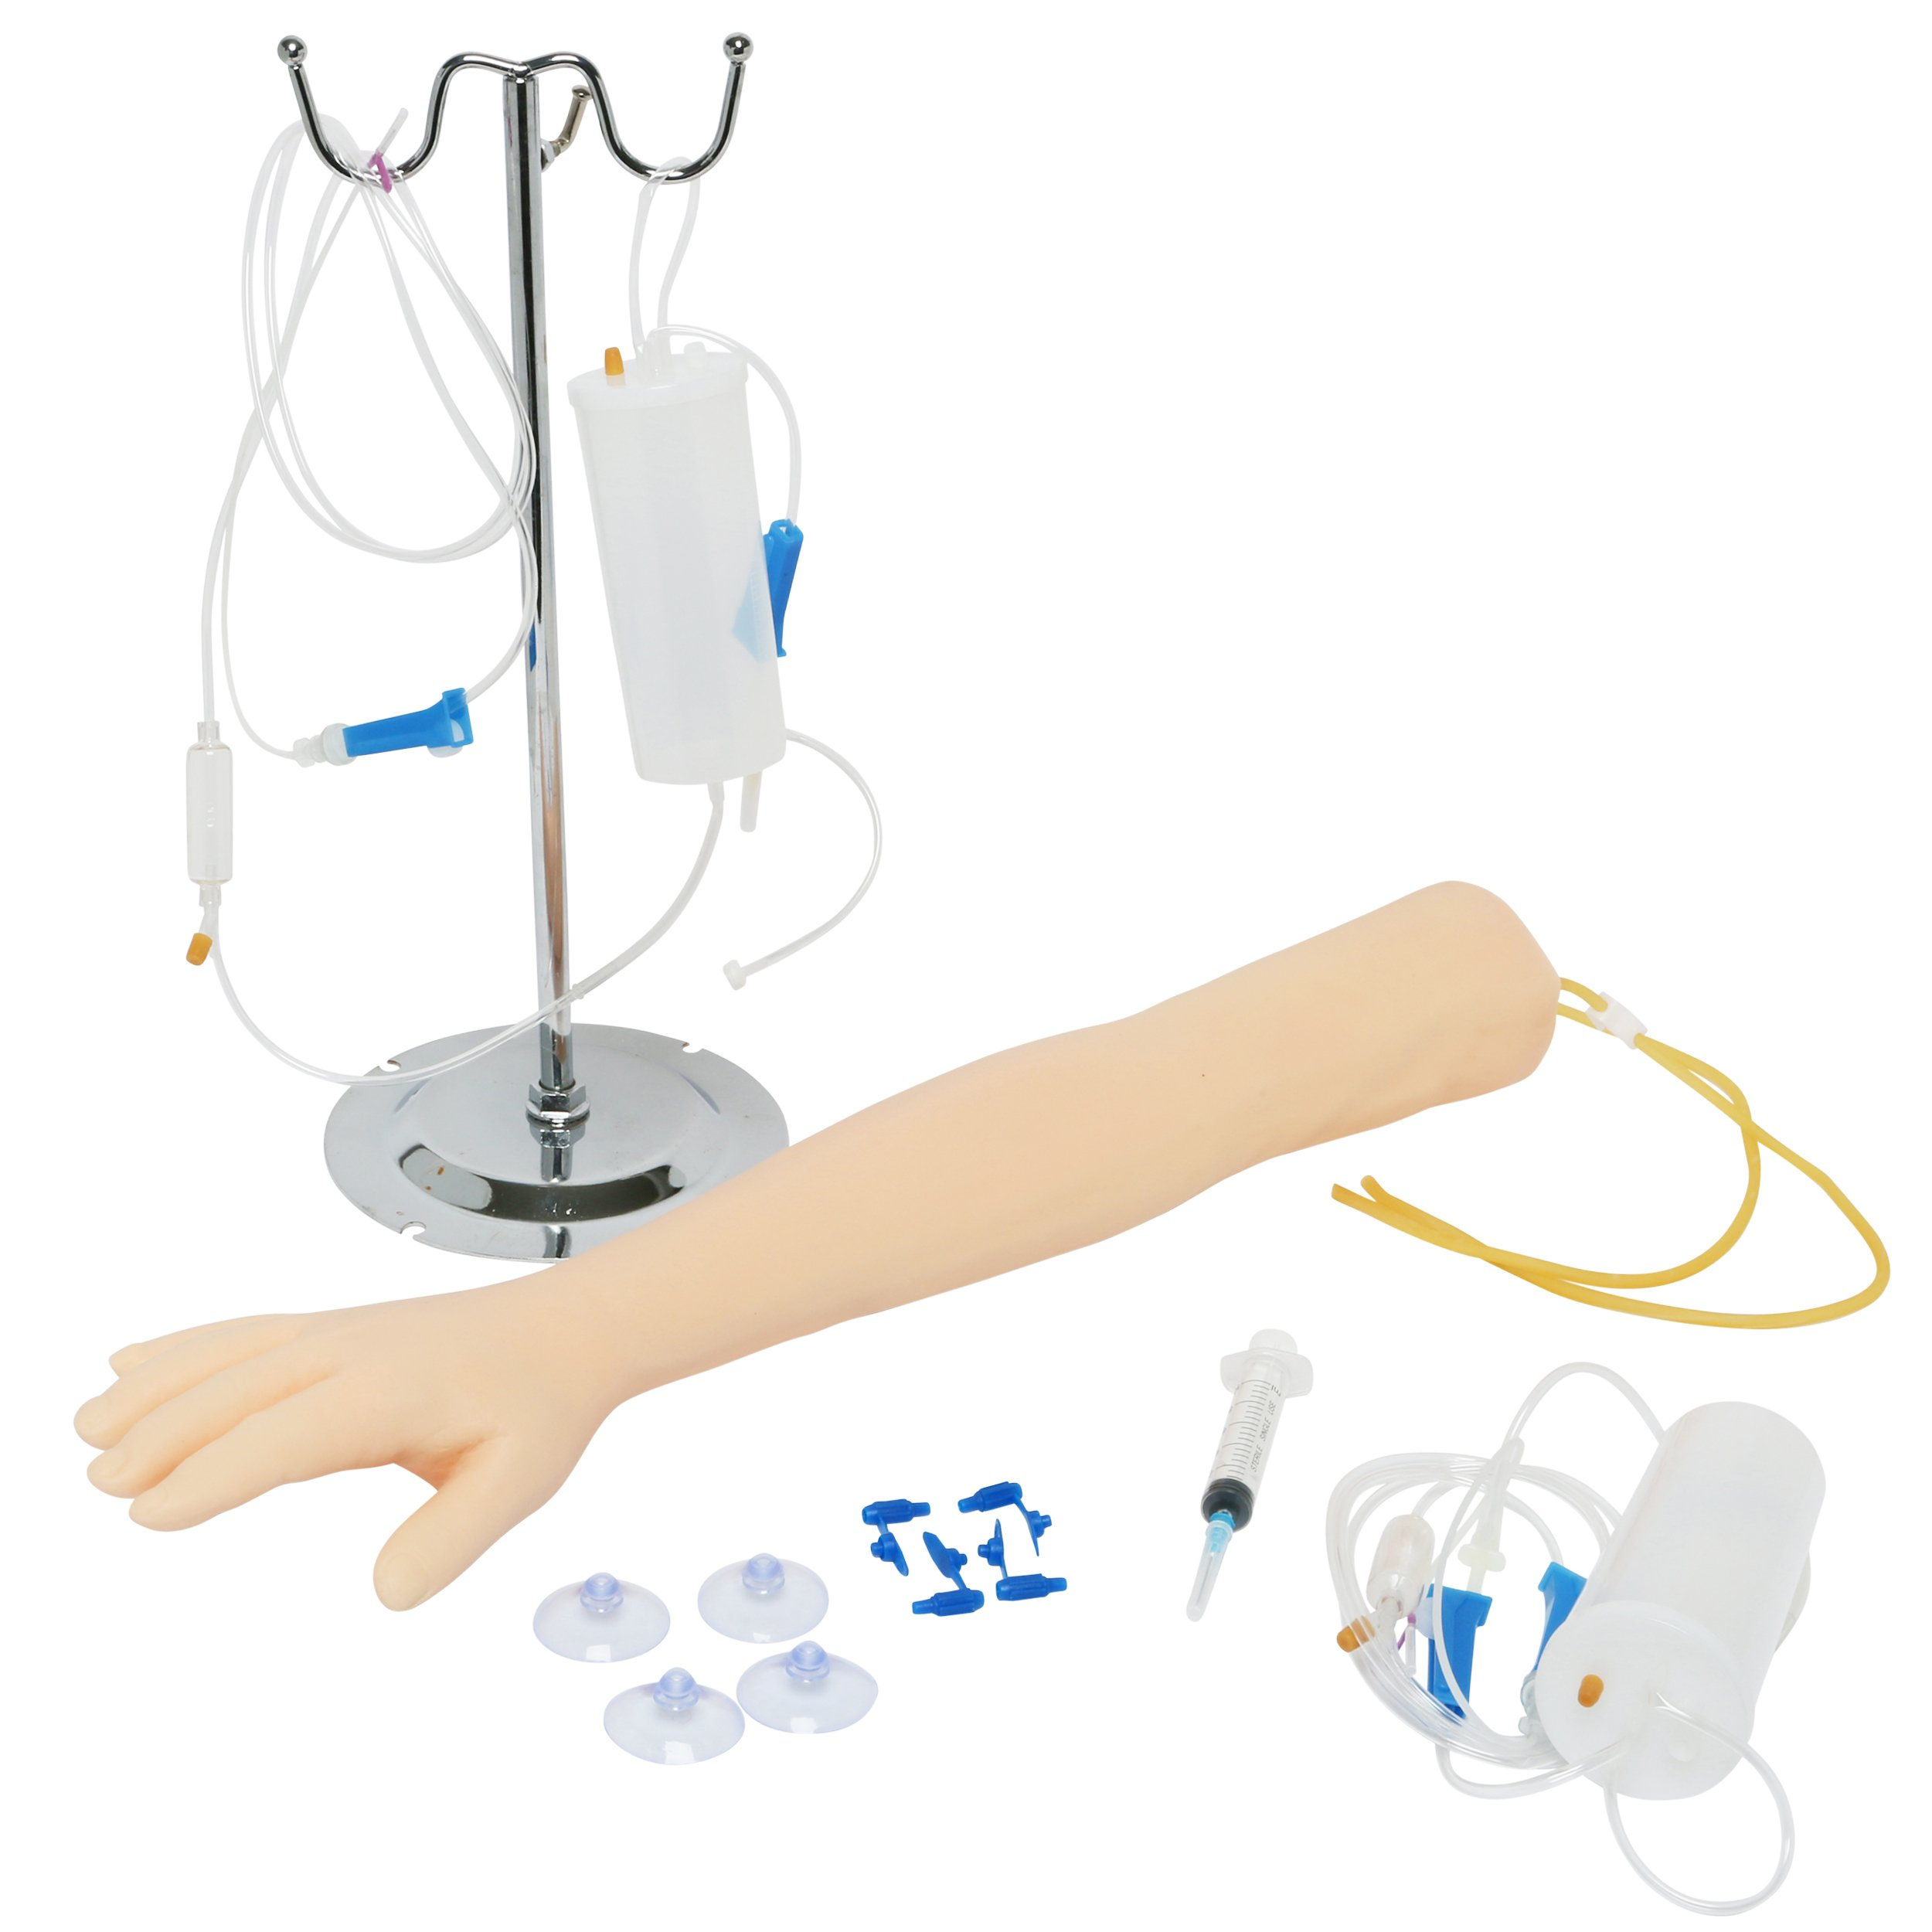 Cheap Phlebotomy Arm Find Phlebotomy Arm Deals On Line At Alibaba